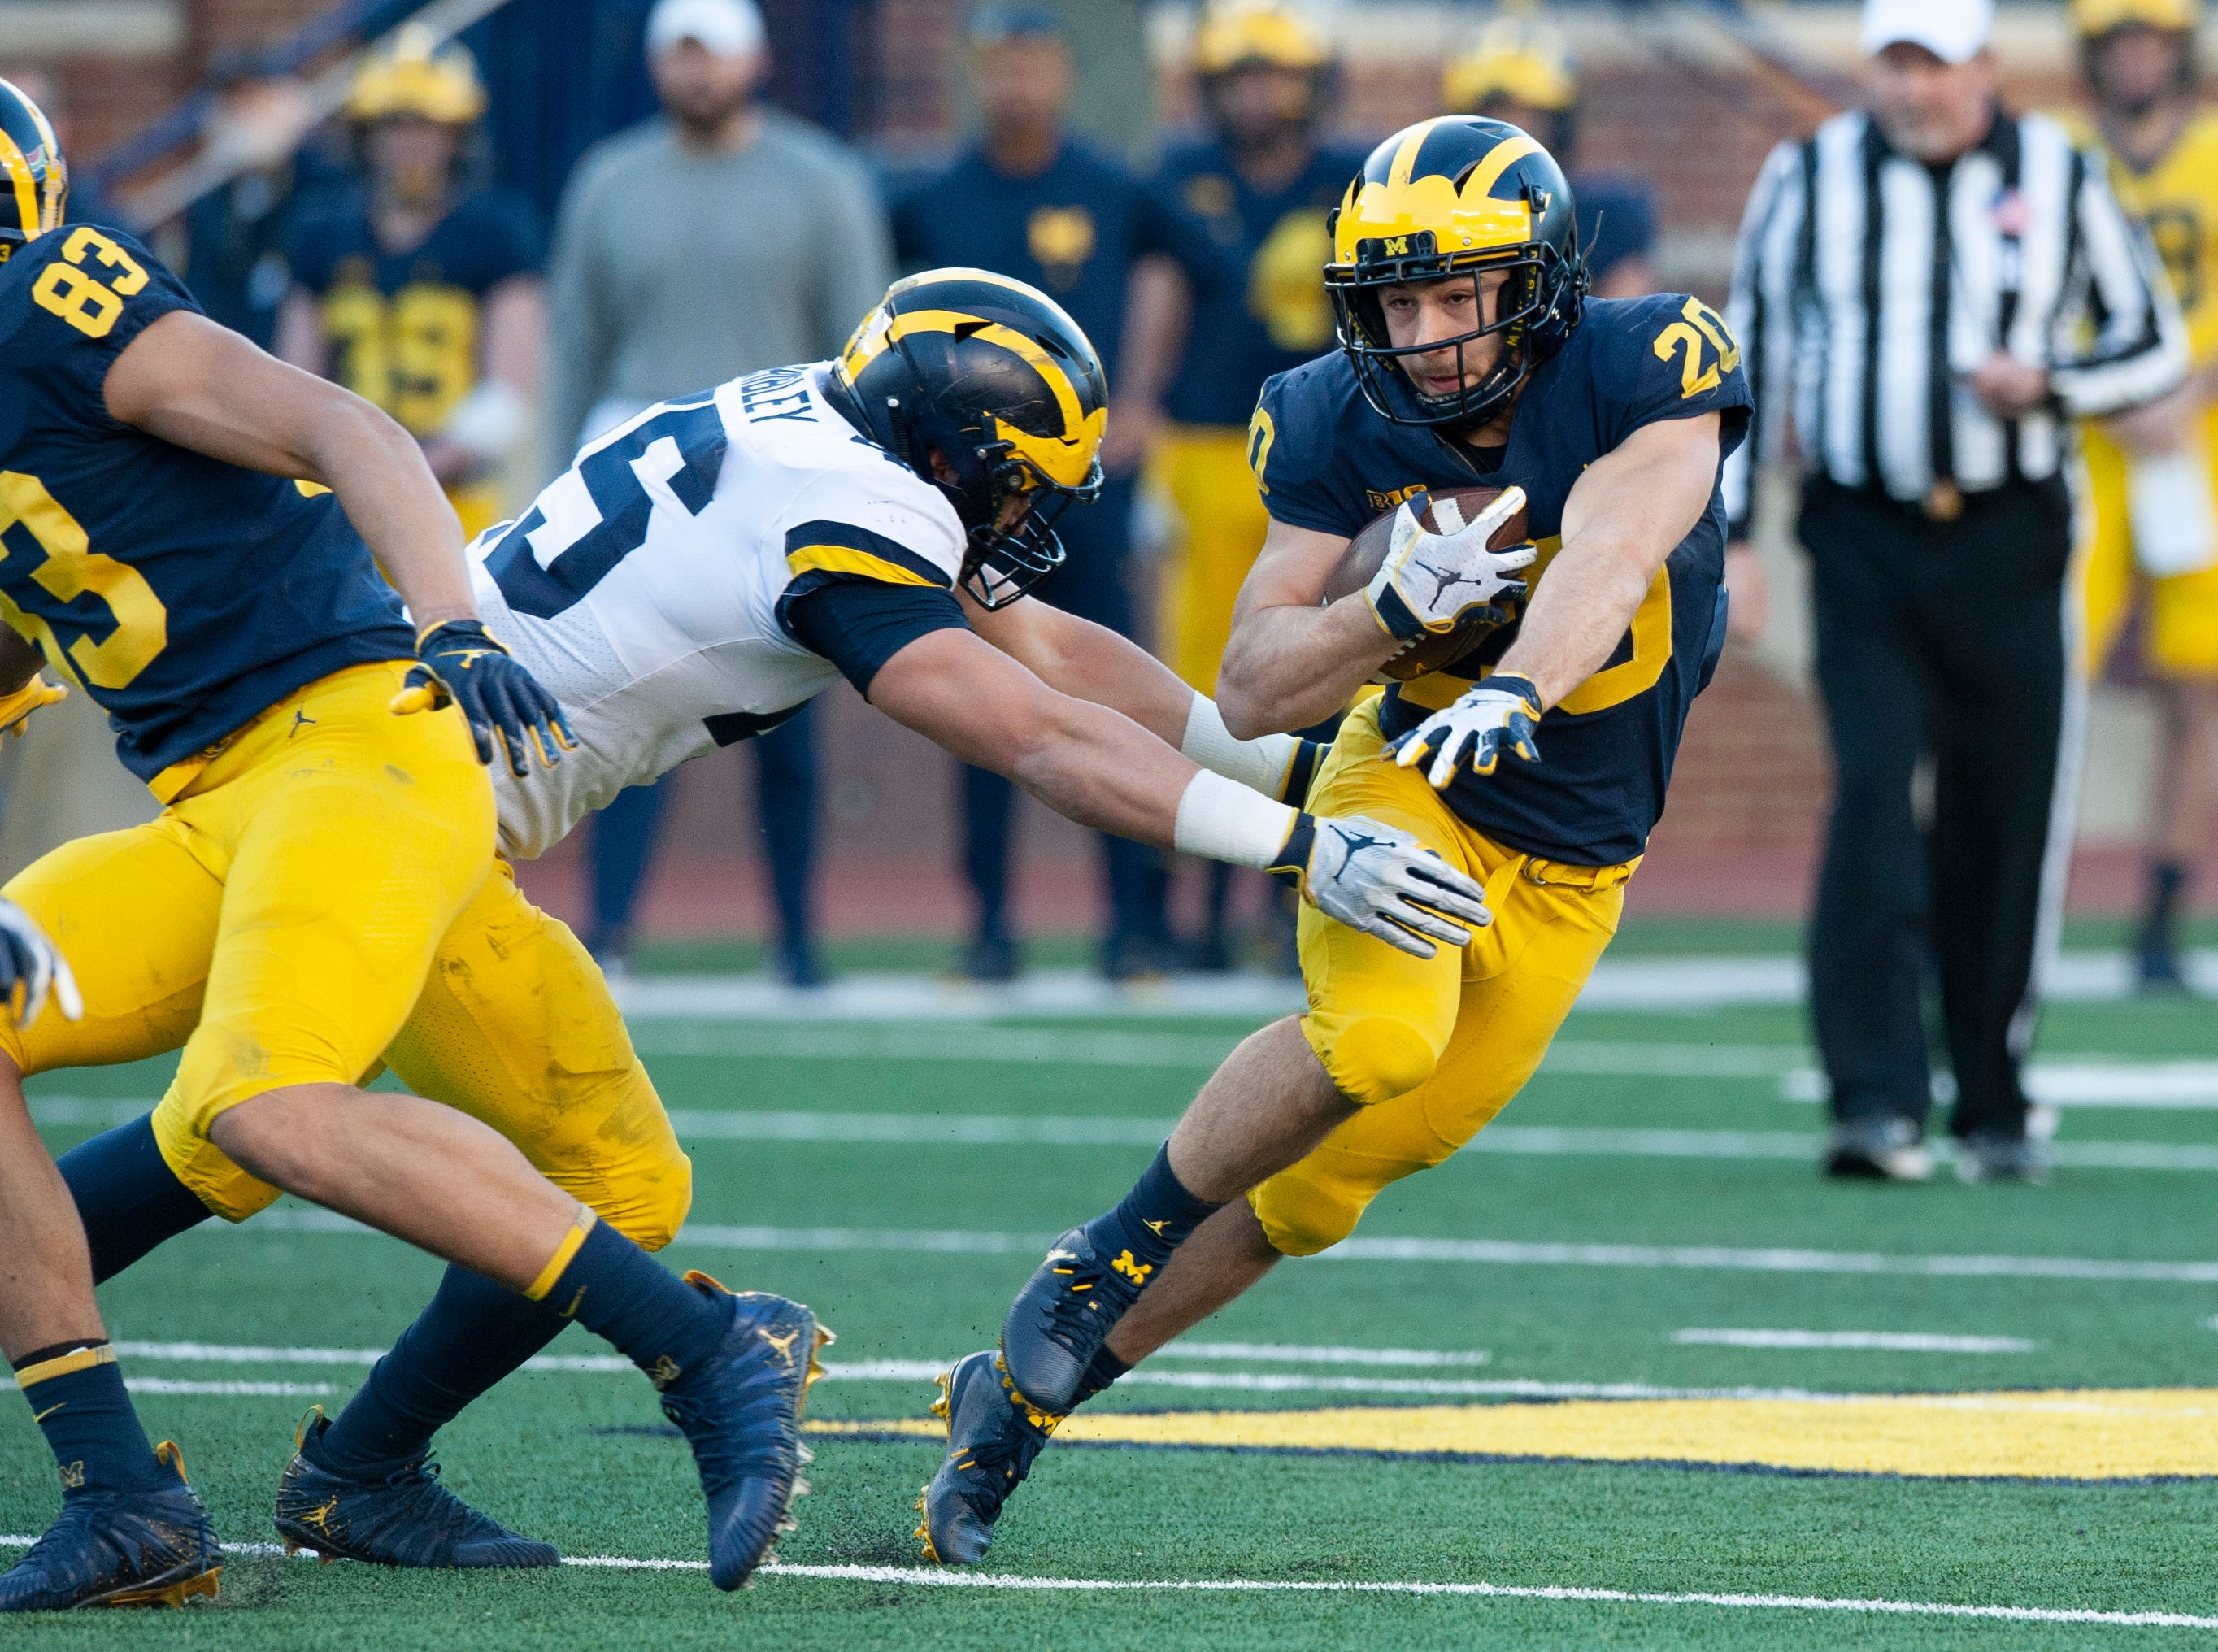 Michigan RB Nicholas Capatina cuts away from a would-be tackler during the scrimmage.